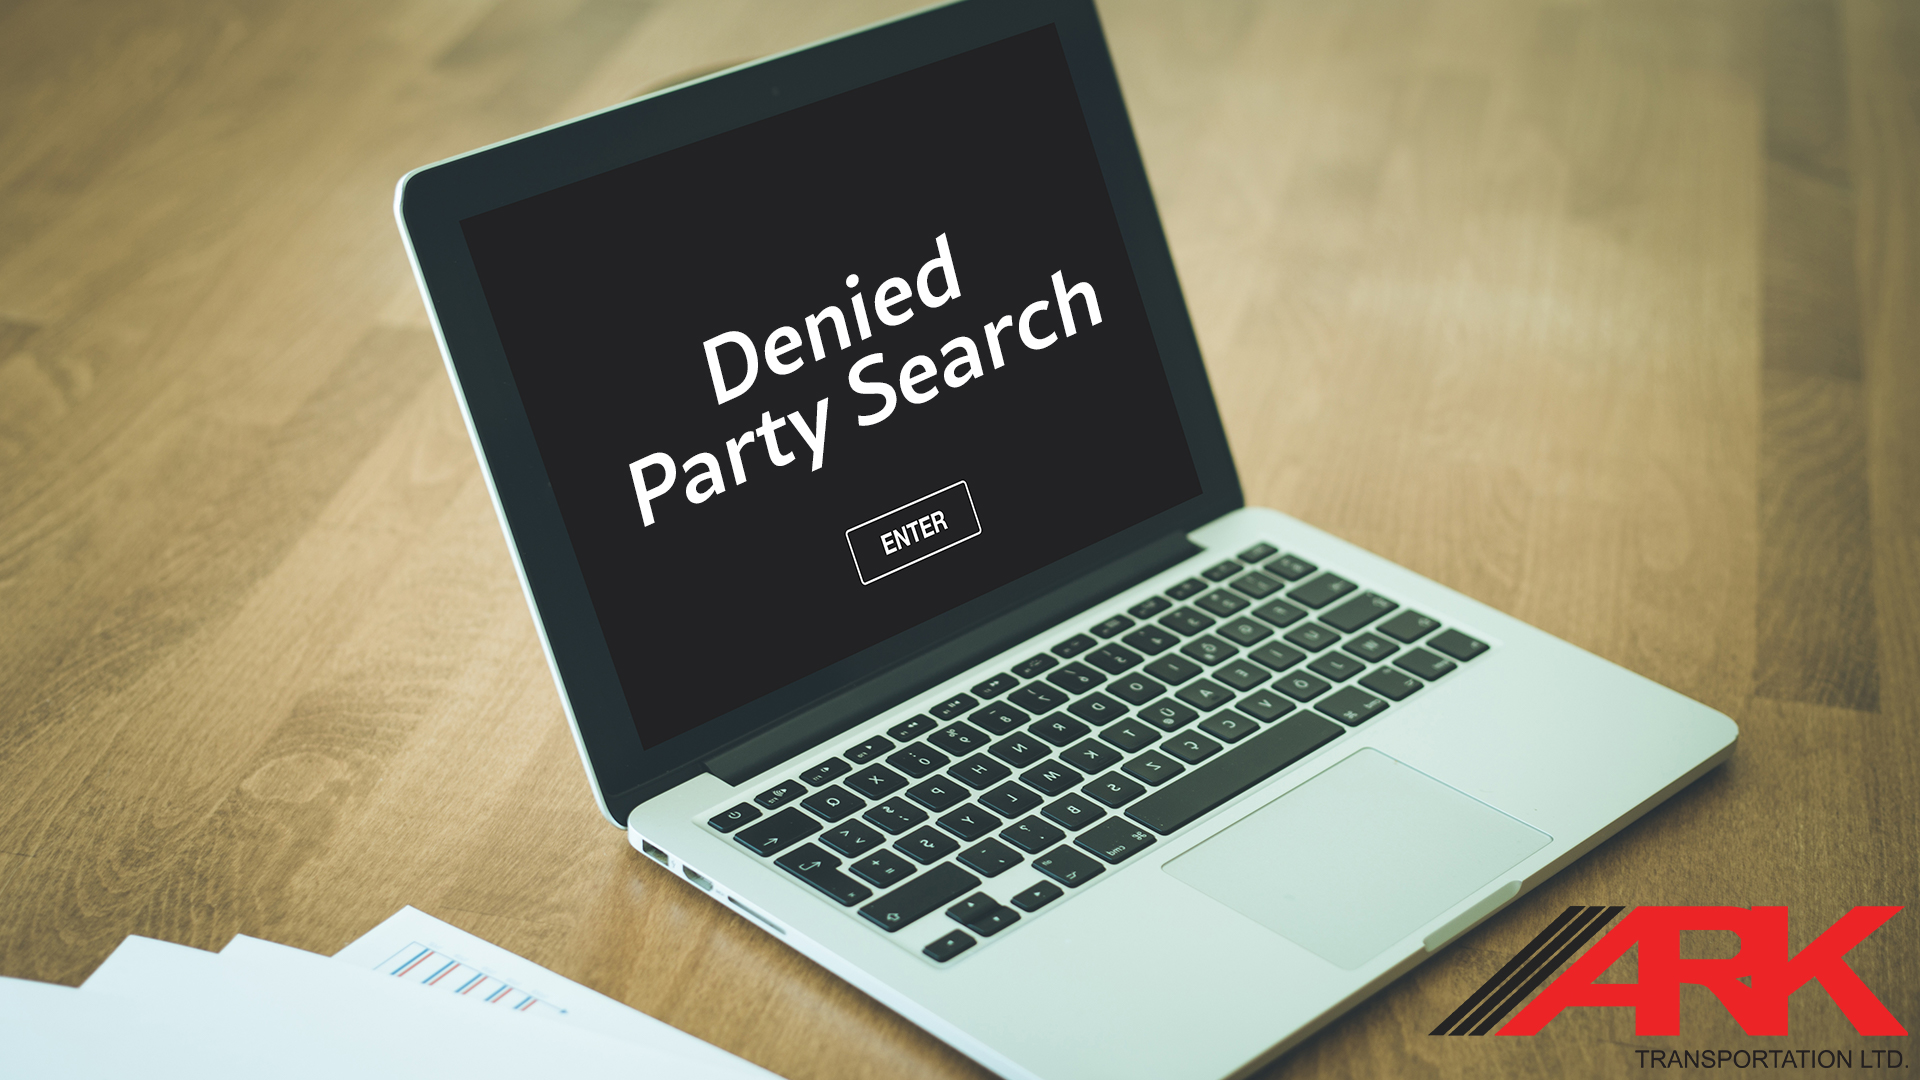 Computer showing Denied Party Screening